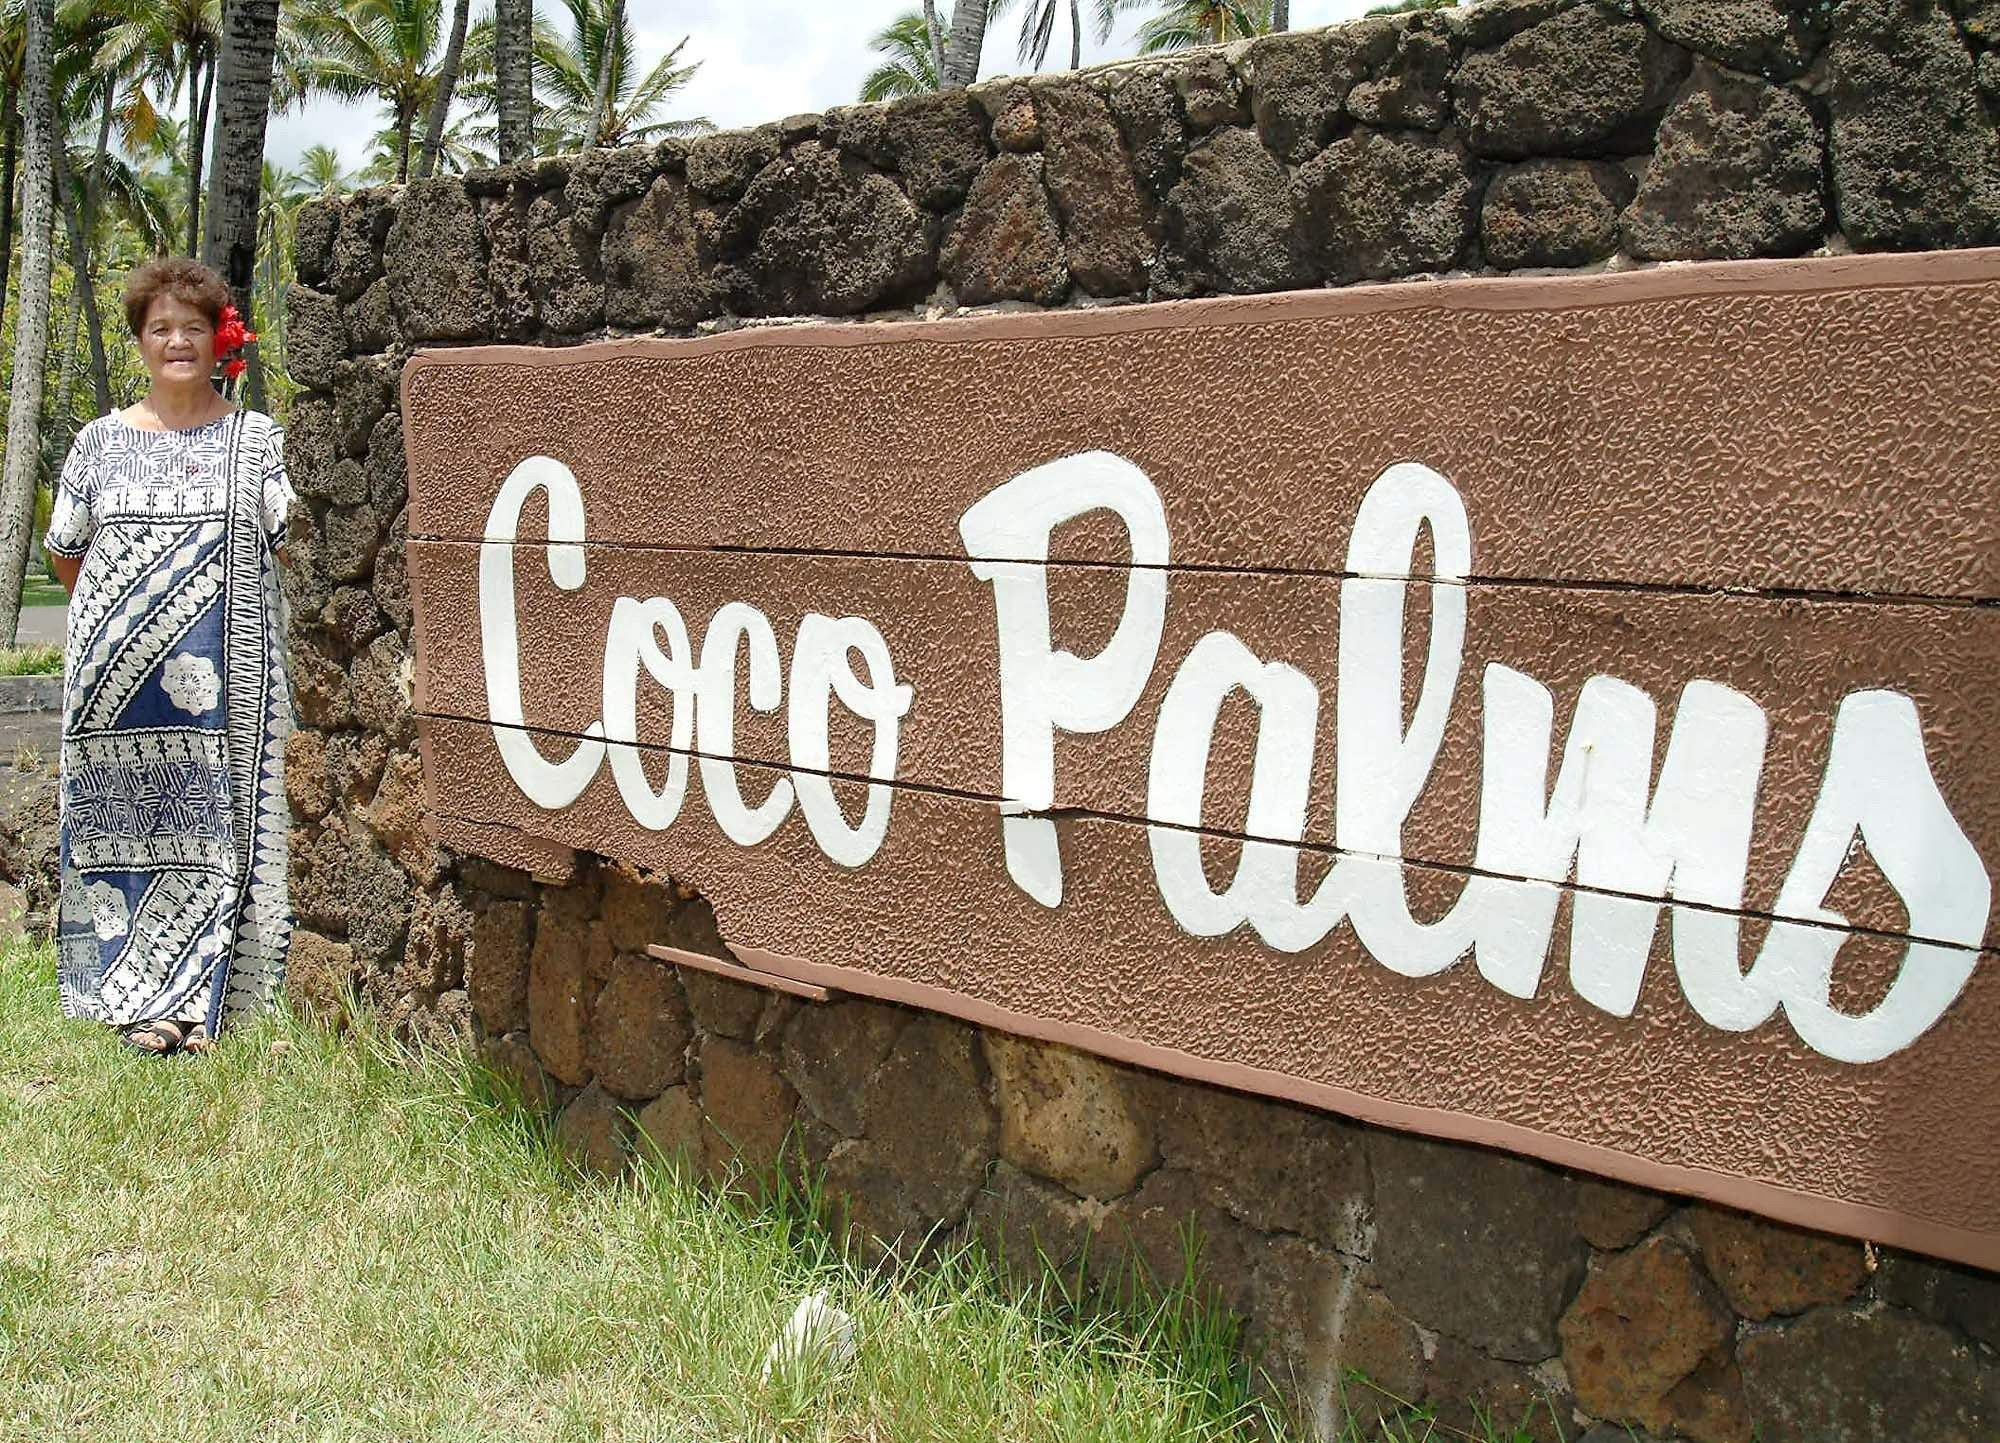 Storied hawaiian resort made famous by elvis will be reborn developers are rebuilding the coco palms resort where elvis presleys character got married in the 1961 film blue hawaii the resort closed after malvernweather Gallery